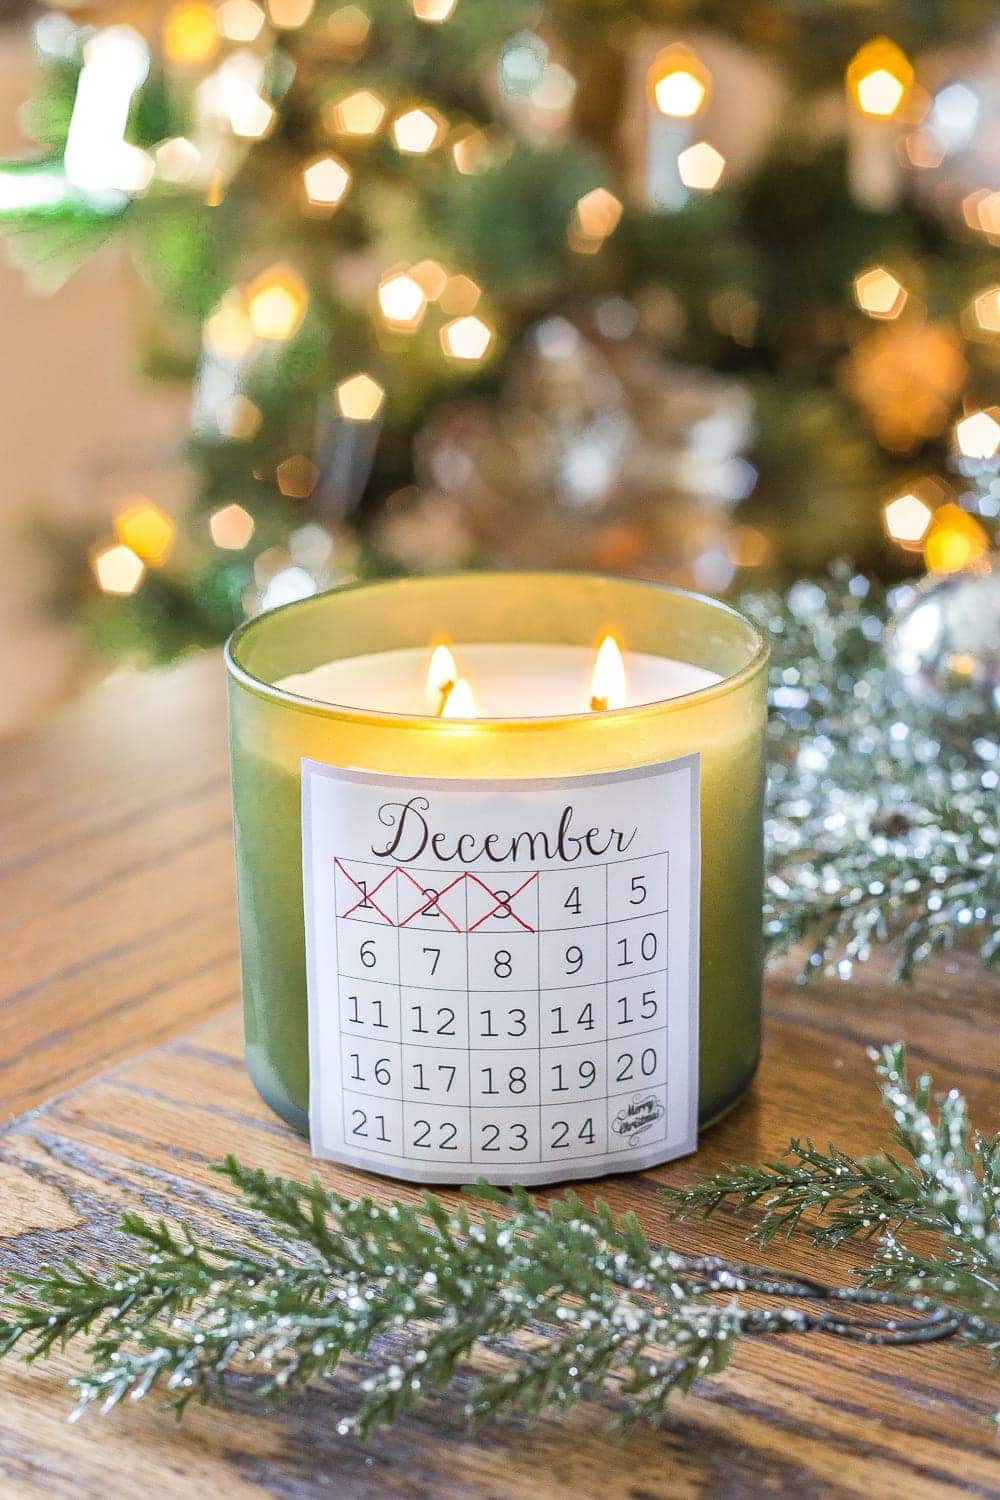 A free printable to make any votive holder an easy Advent calendar candle and count down the days until Christmas. #advent #ChristmasPrintable